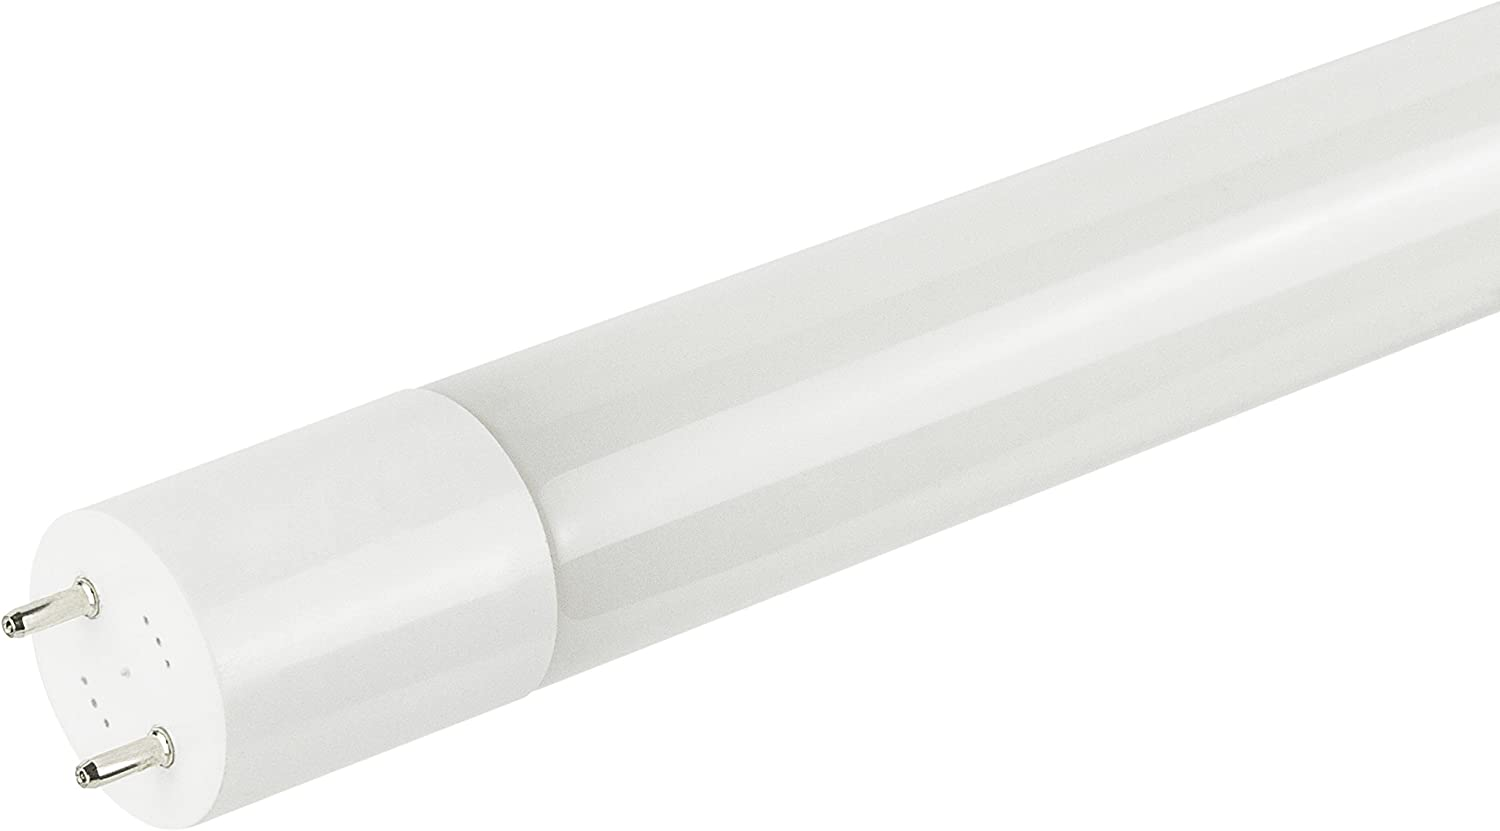 Sunlite T8//LED//4//12W//IS//DLC//30K 4 Foot T8 LED 12 Watt 120-277 Volt 3000K Warm White Plug and Play Equivalent Linear Replacement Light Bulb